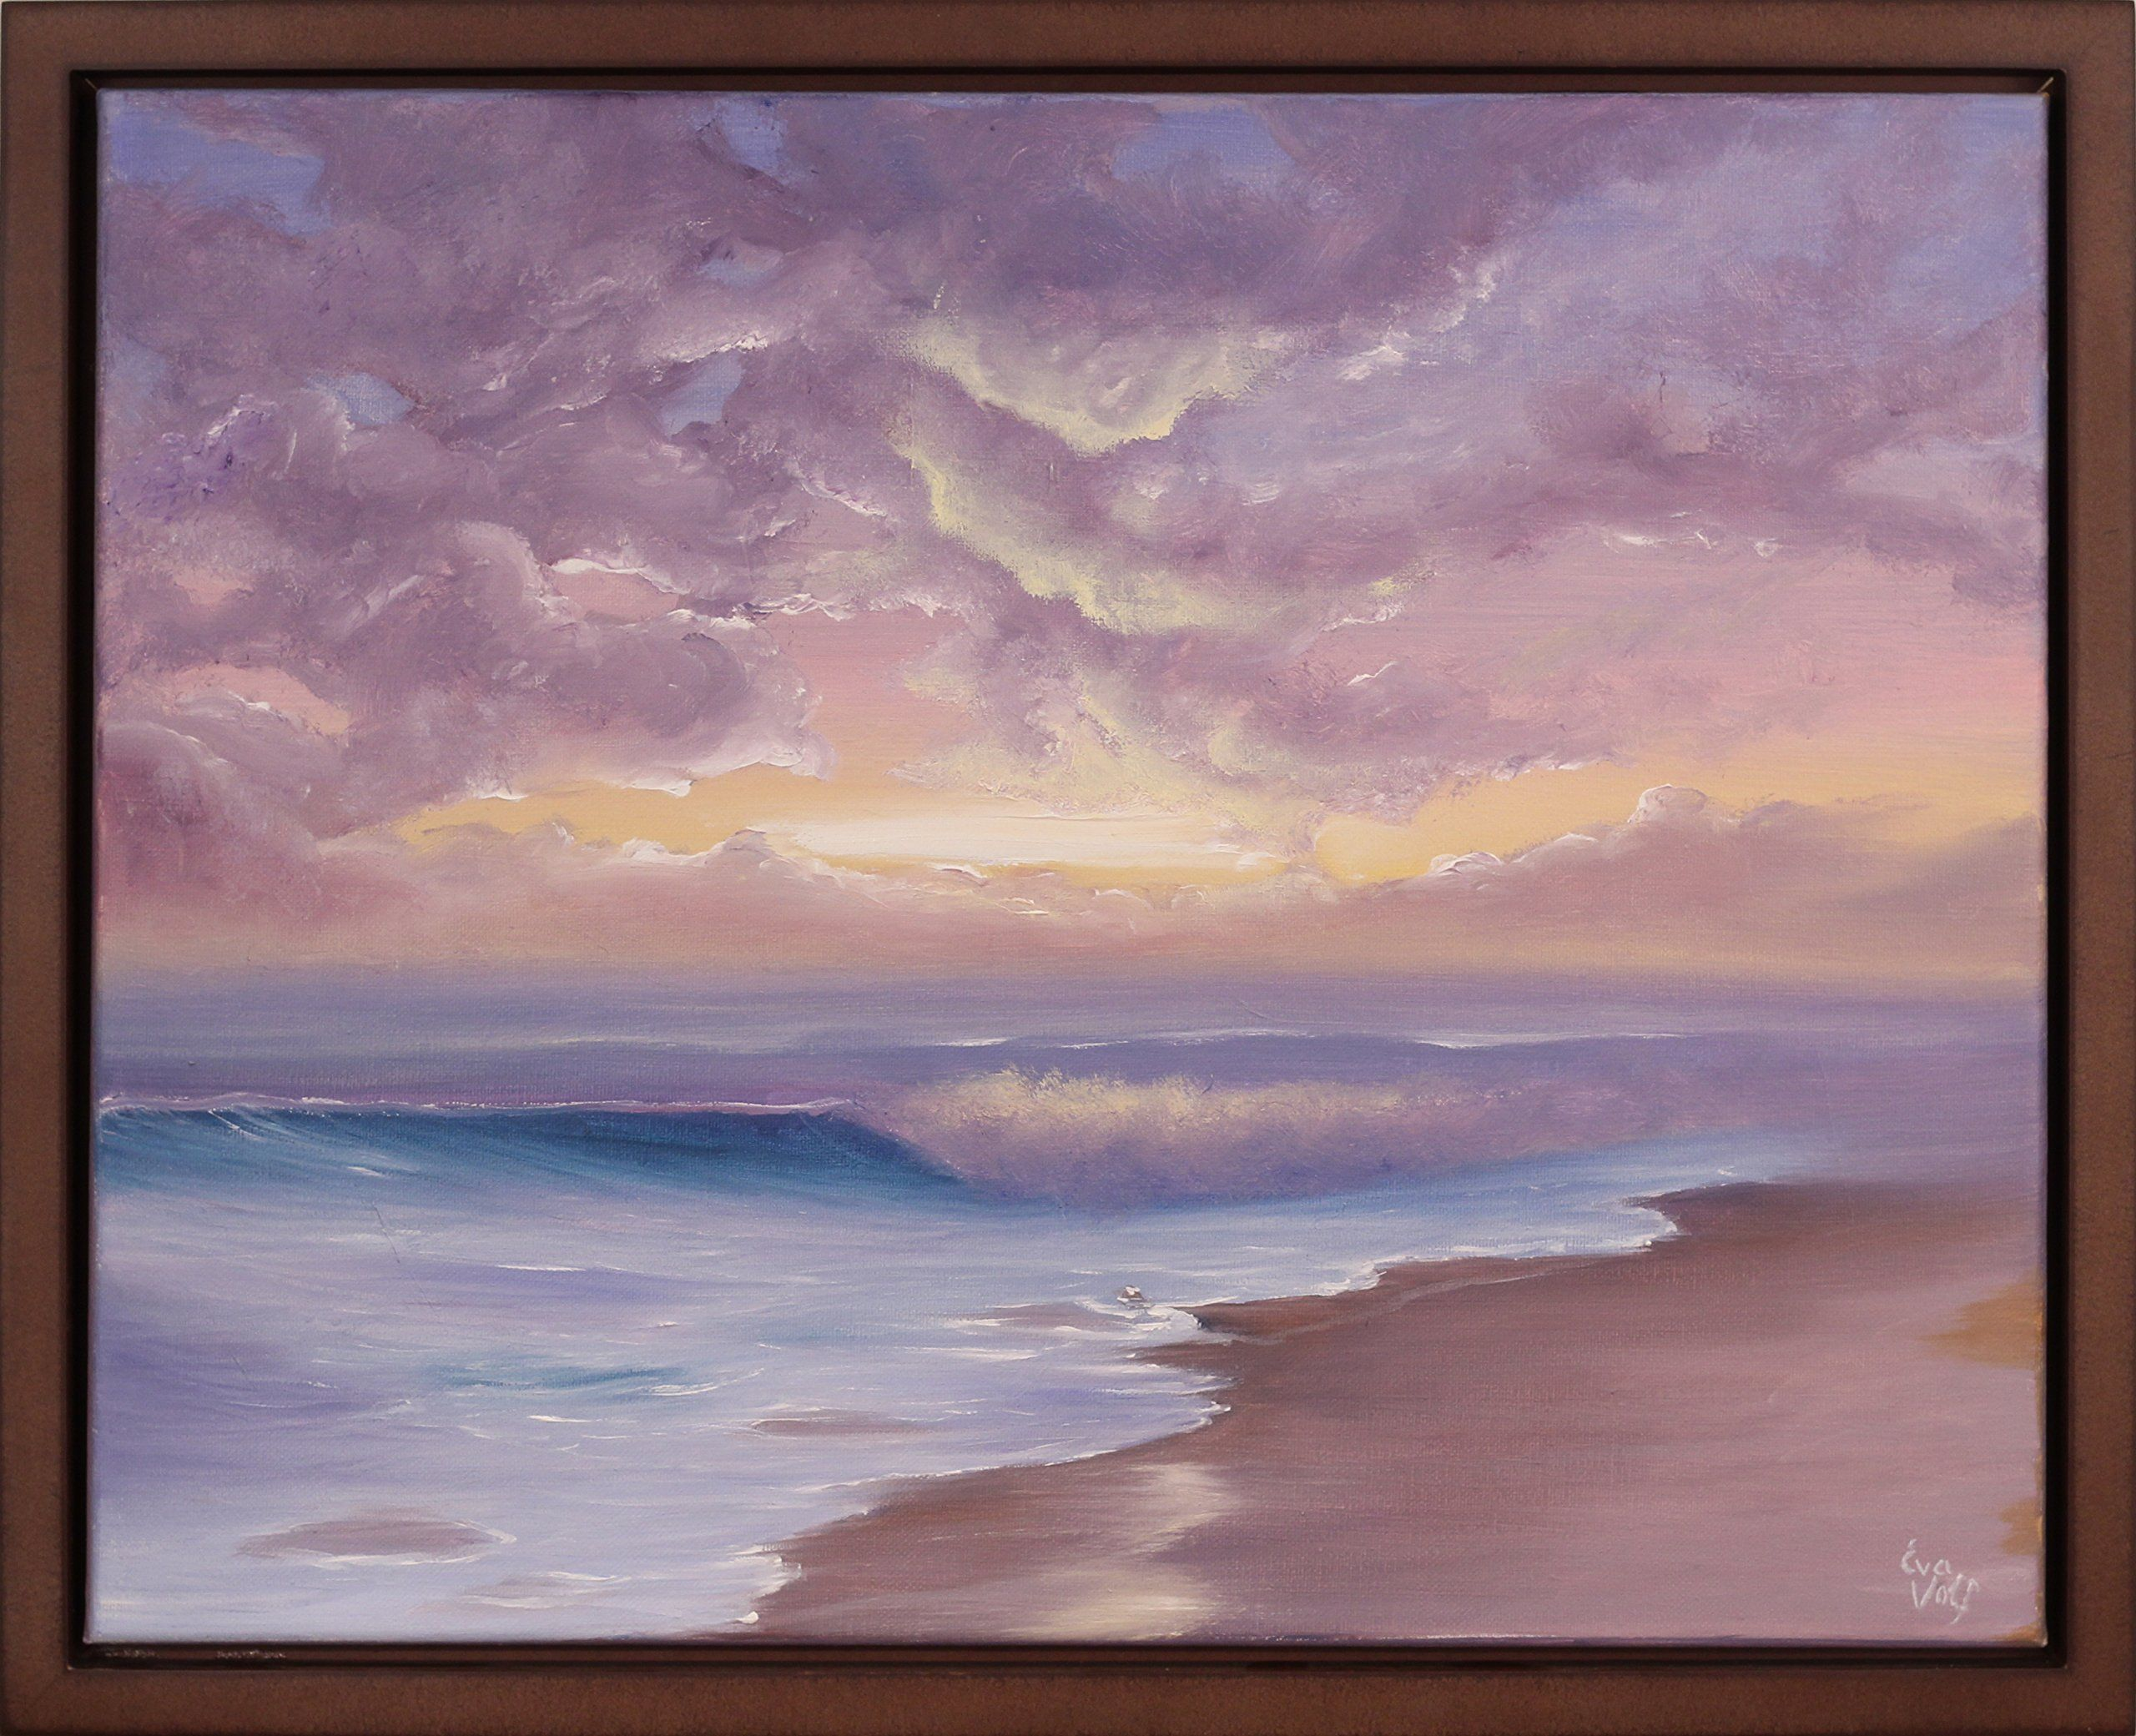 original beach scene painting ocean sunset oil painting ocean waves framed art